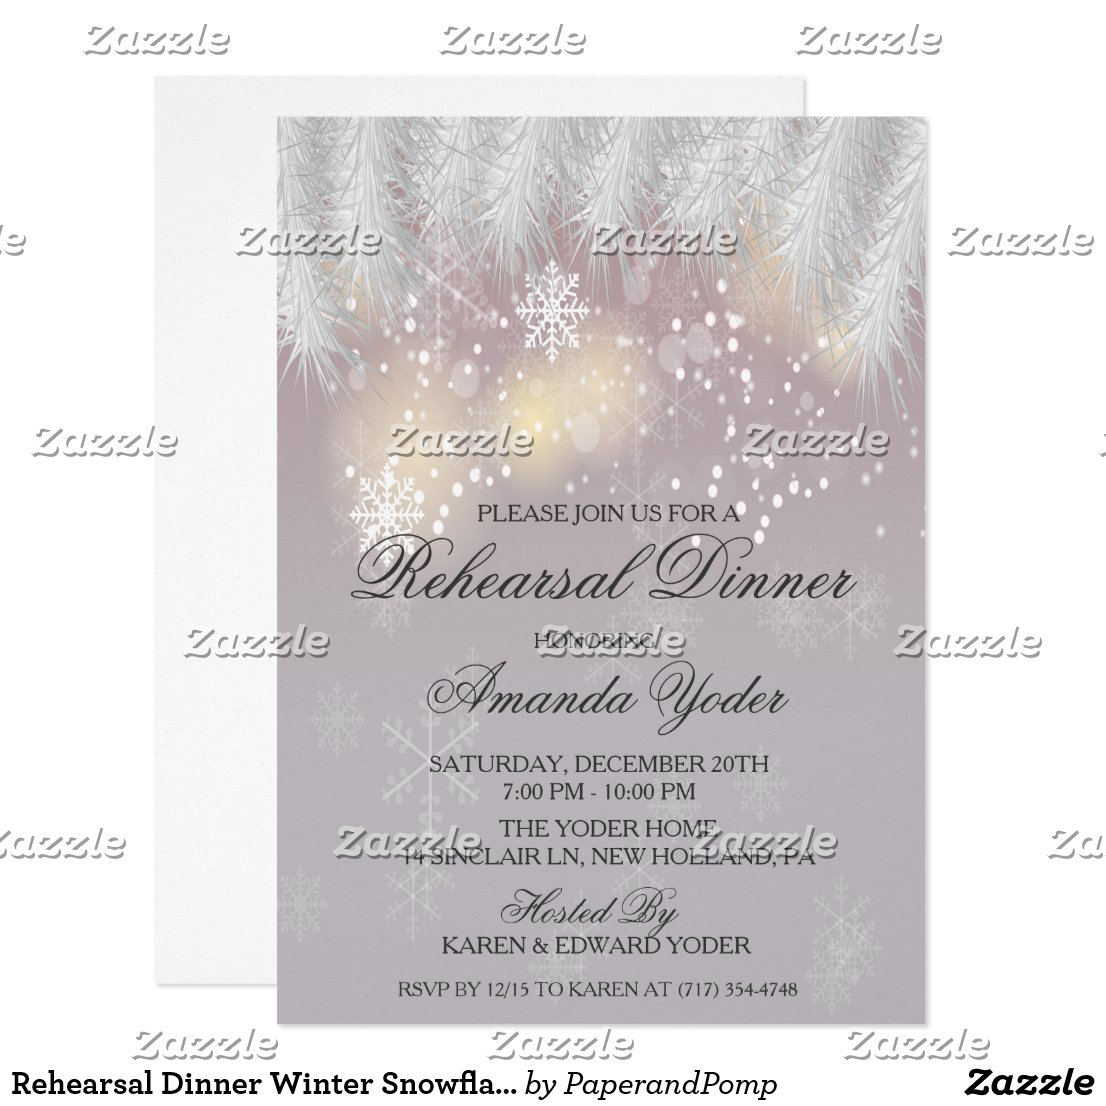 Rehearsal Dinner Winter Snowflake Invitation